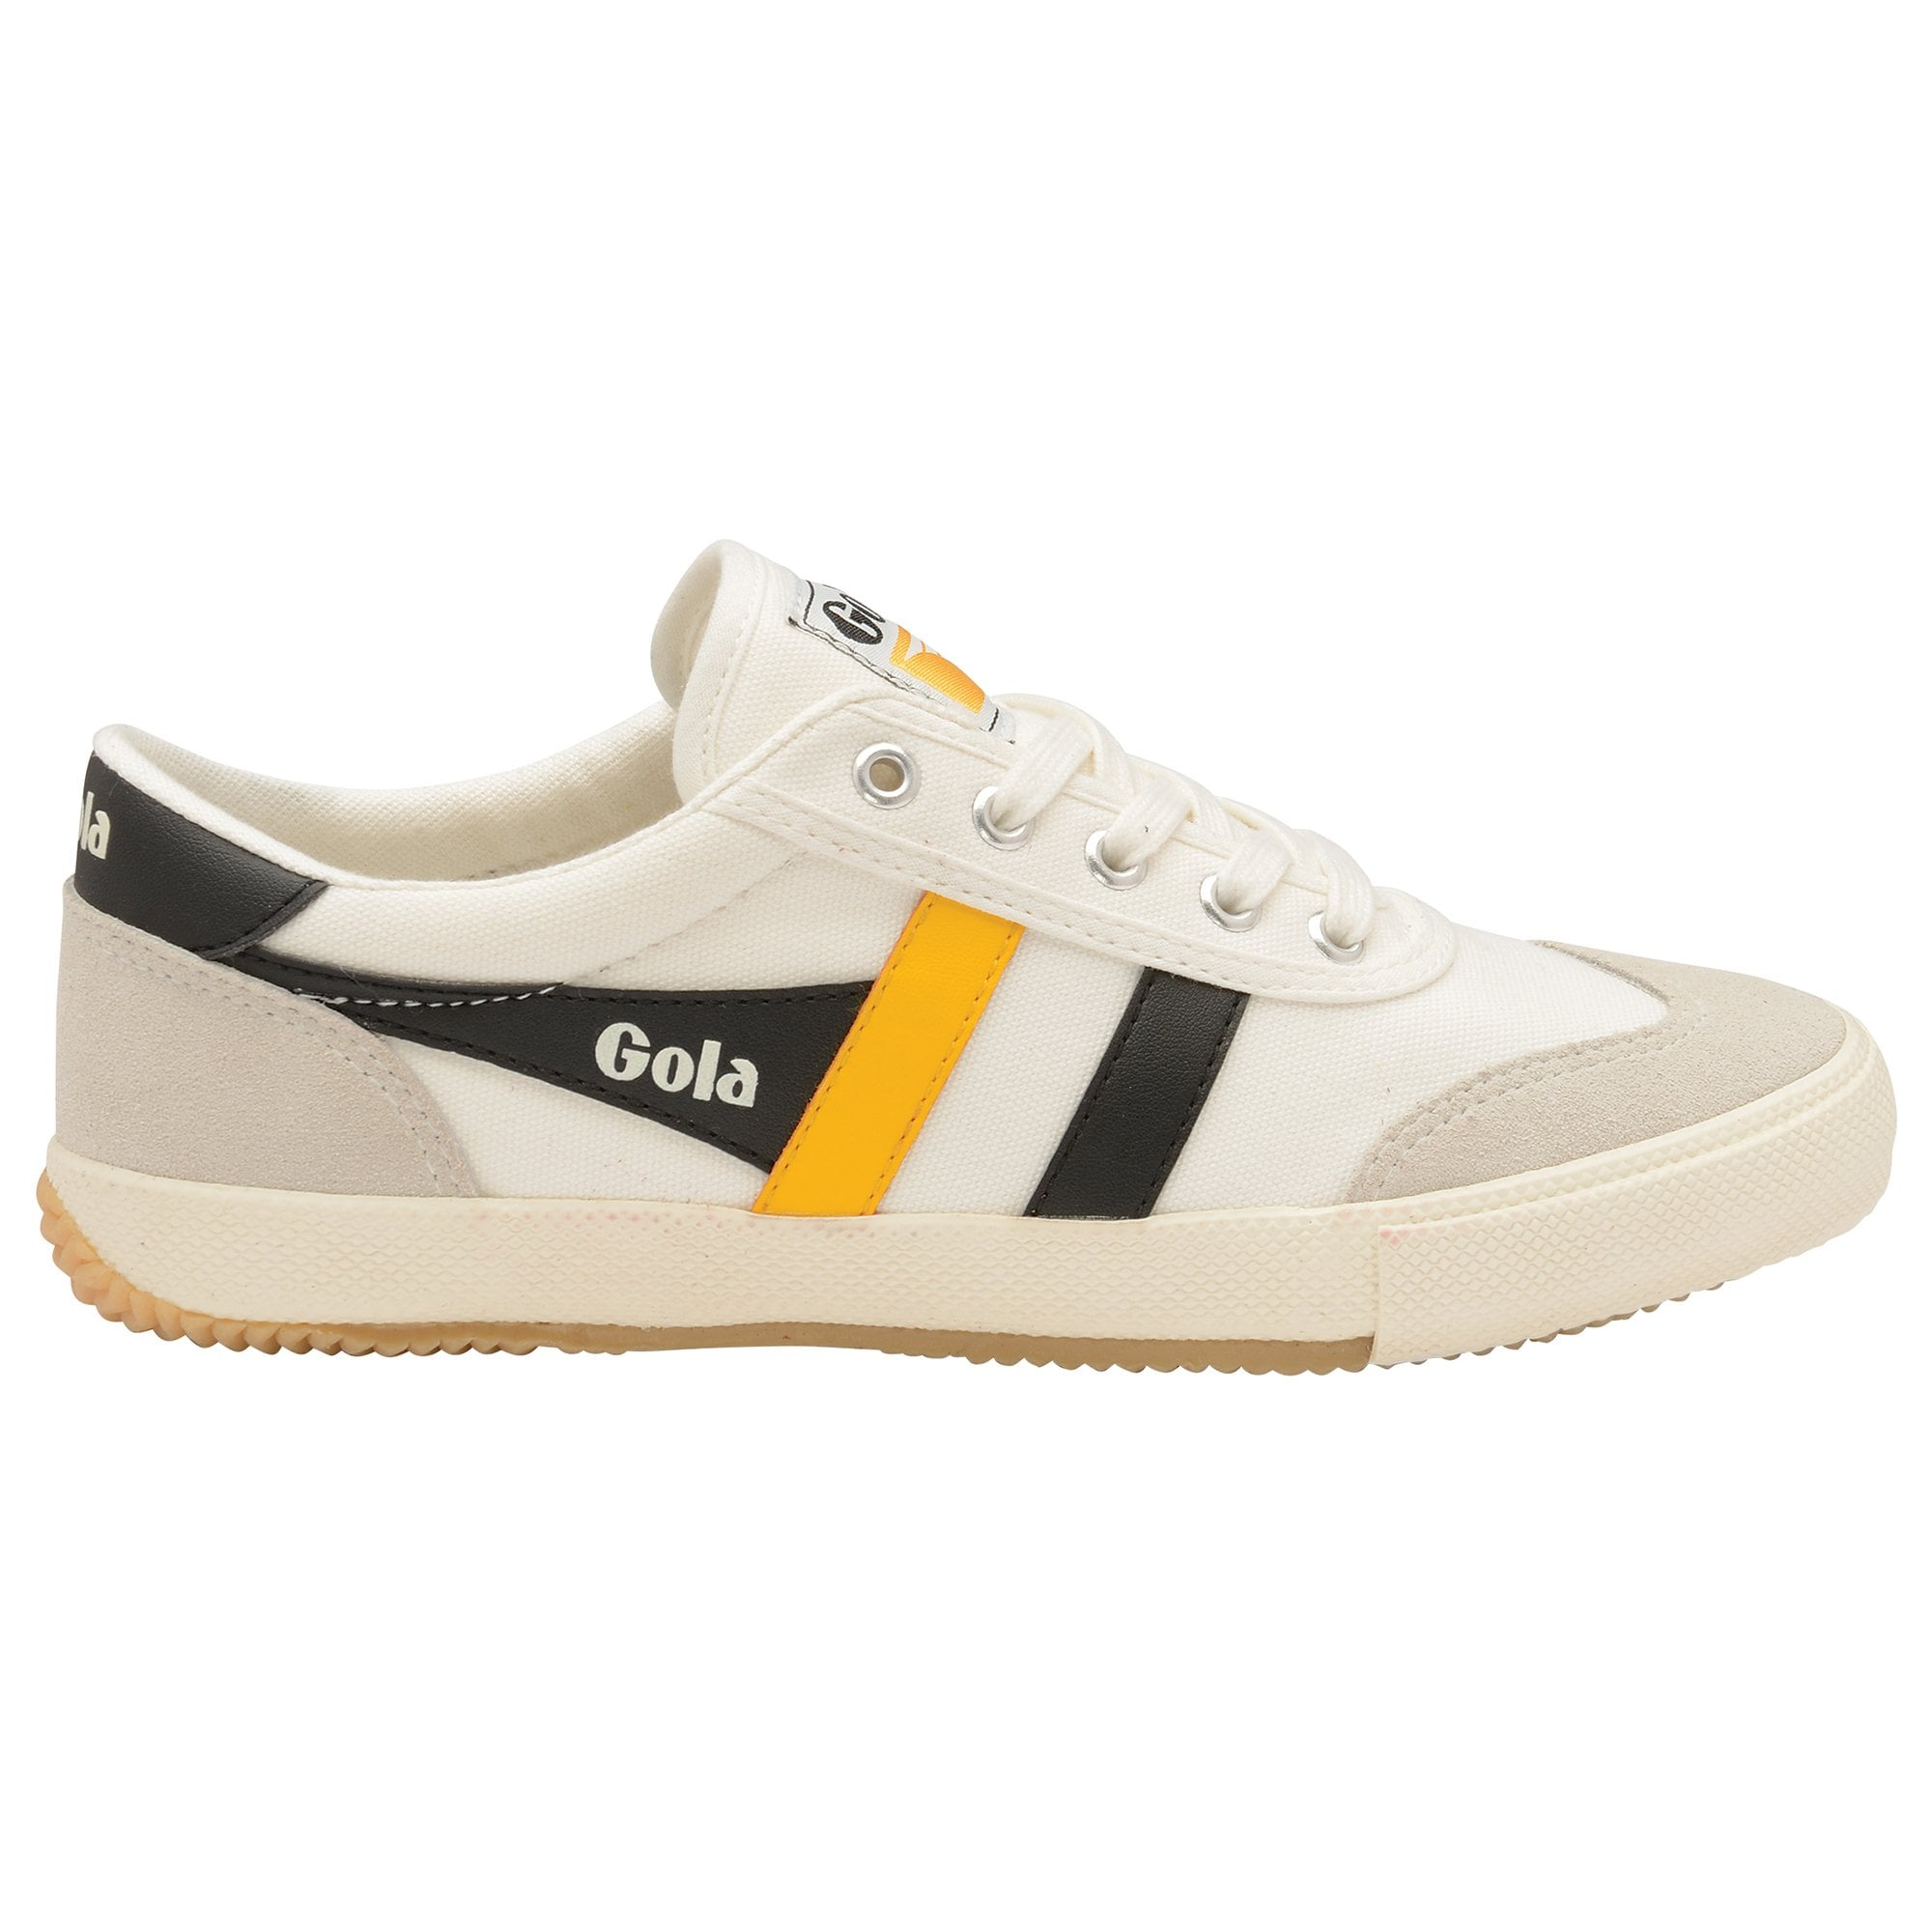 Gola womens Badminton trainers in white